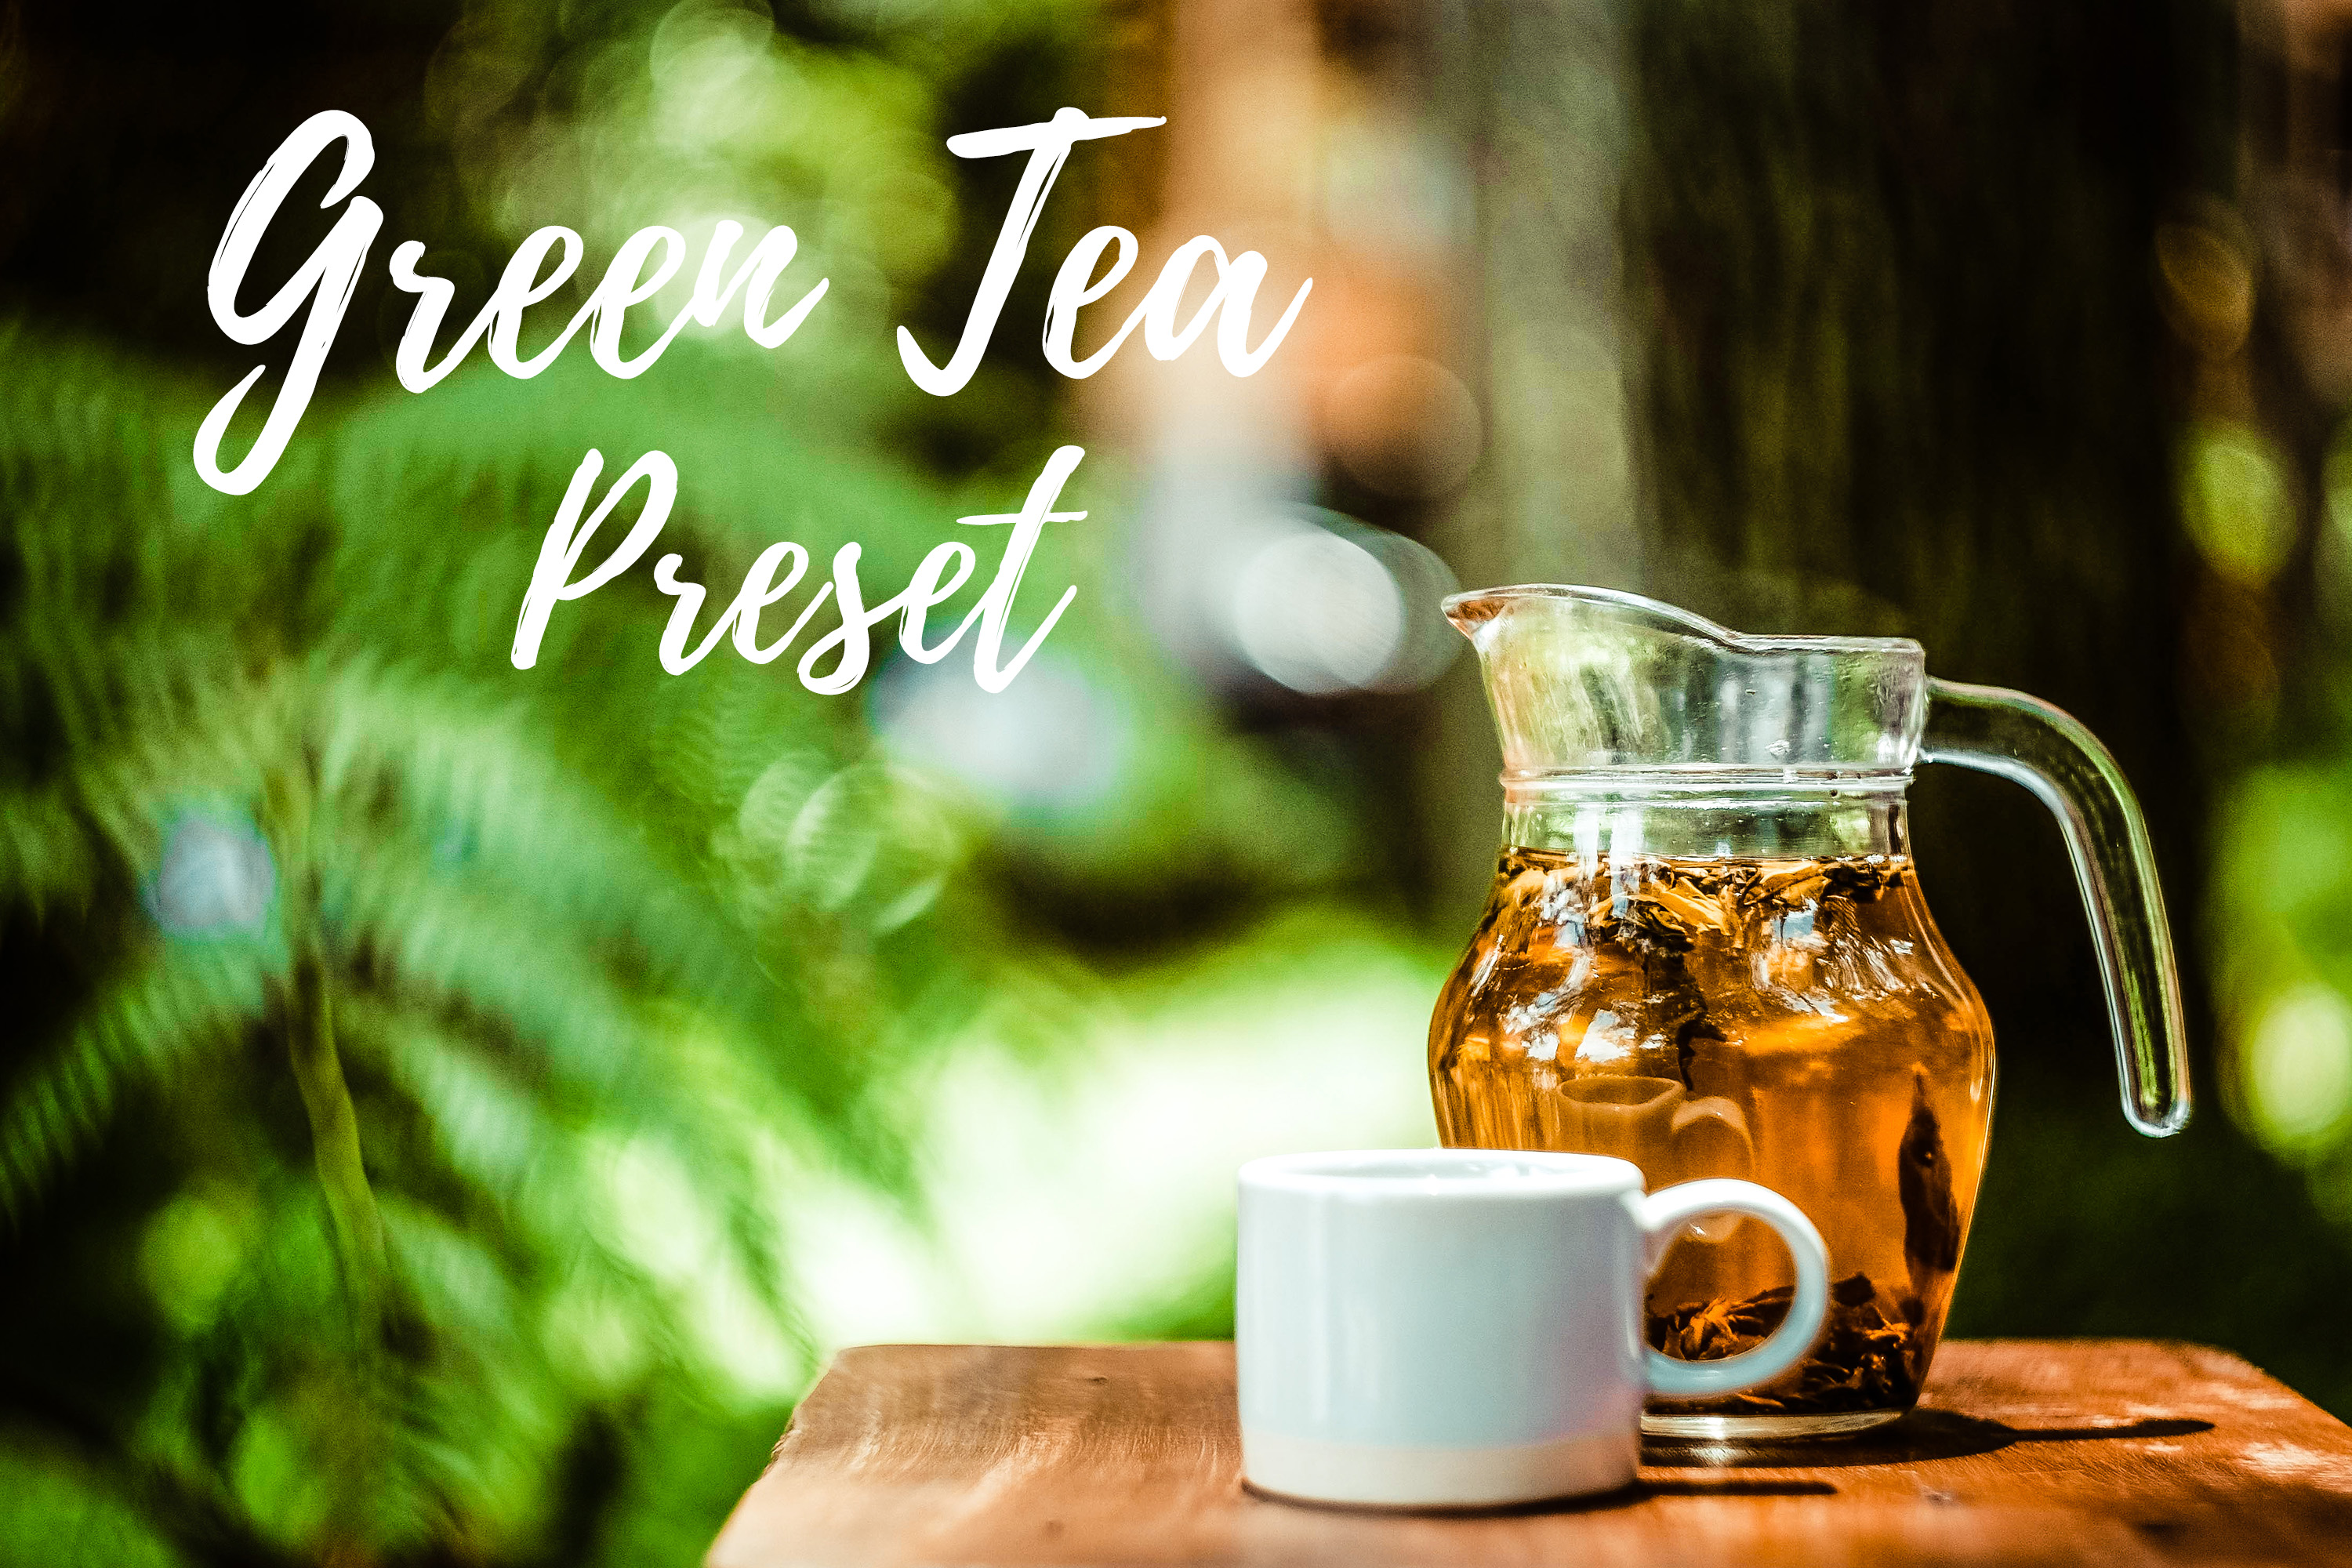 Download Free Lightroom Presets Green Tea Graphic By Mybeautifulfiles for Cricut Explore, Silhouette and other cutting machines.